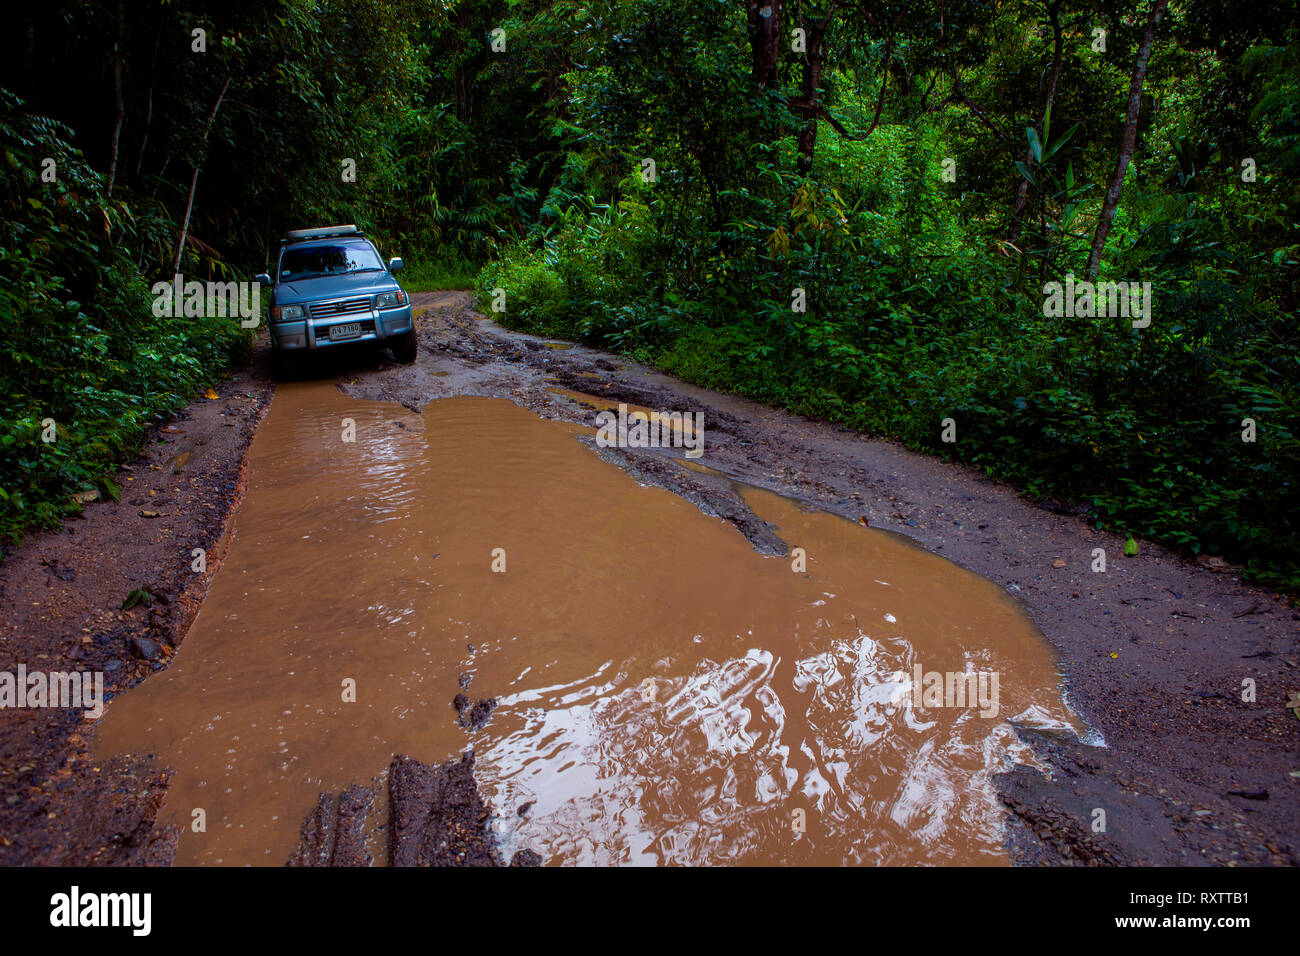 chiangmai thailand - september25,2013 : 4x4 suv car approach for passing offroad trail in high mountain of chiangmai province one of most popular trav - Stock Image